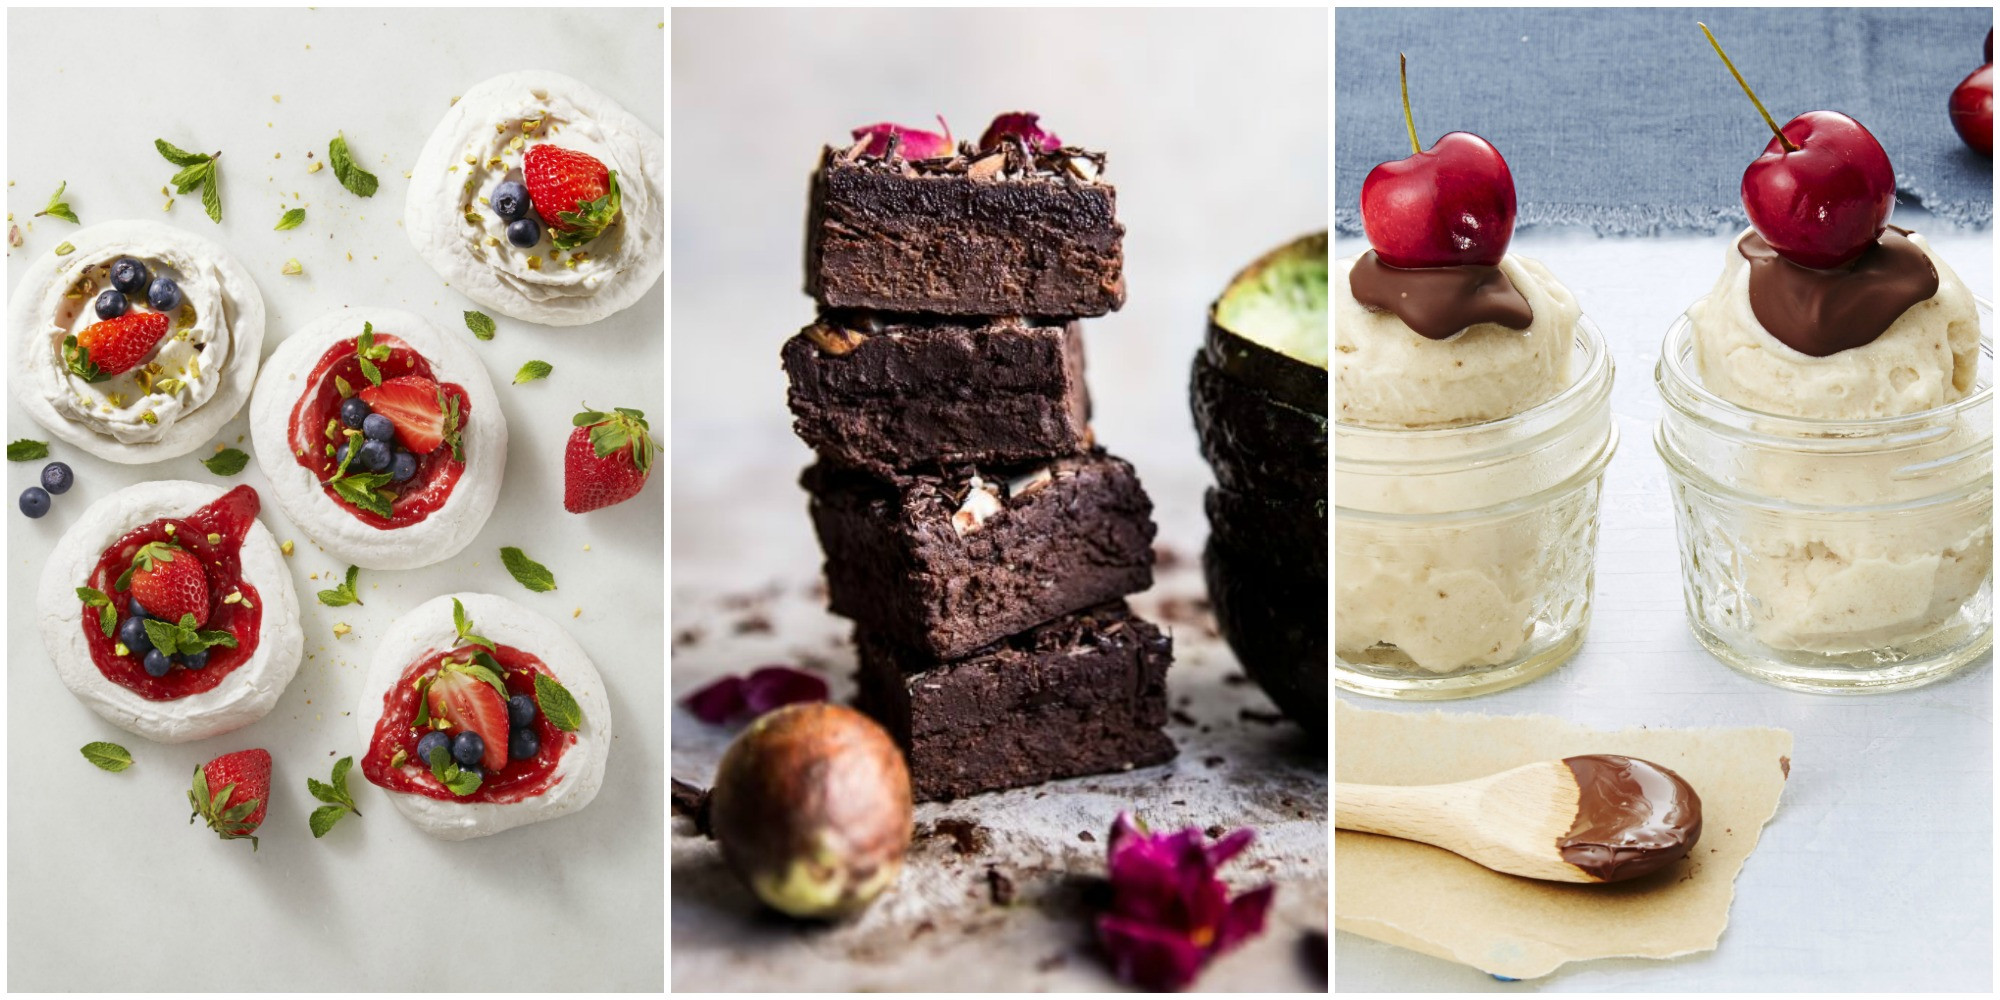 Easy And Healthy Desserts  15 Best Healthy Dessert Recipes Easy Ideas for Low